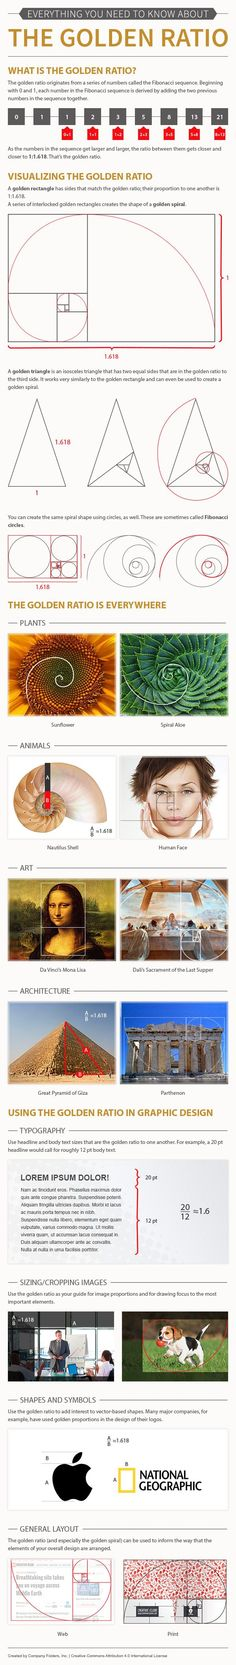 Proporção áurea | Everything you Need to Know About The Golden Ratio #infographic #GoldenRatio